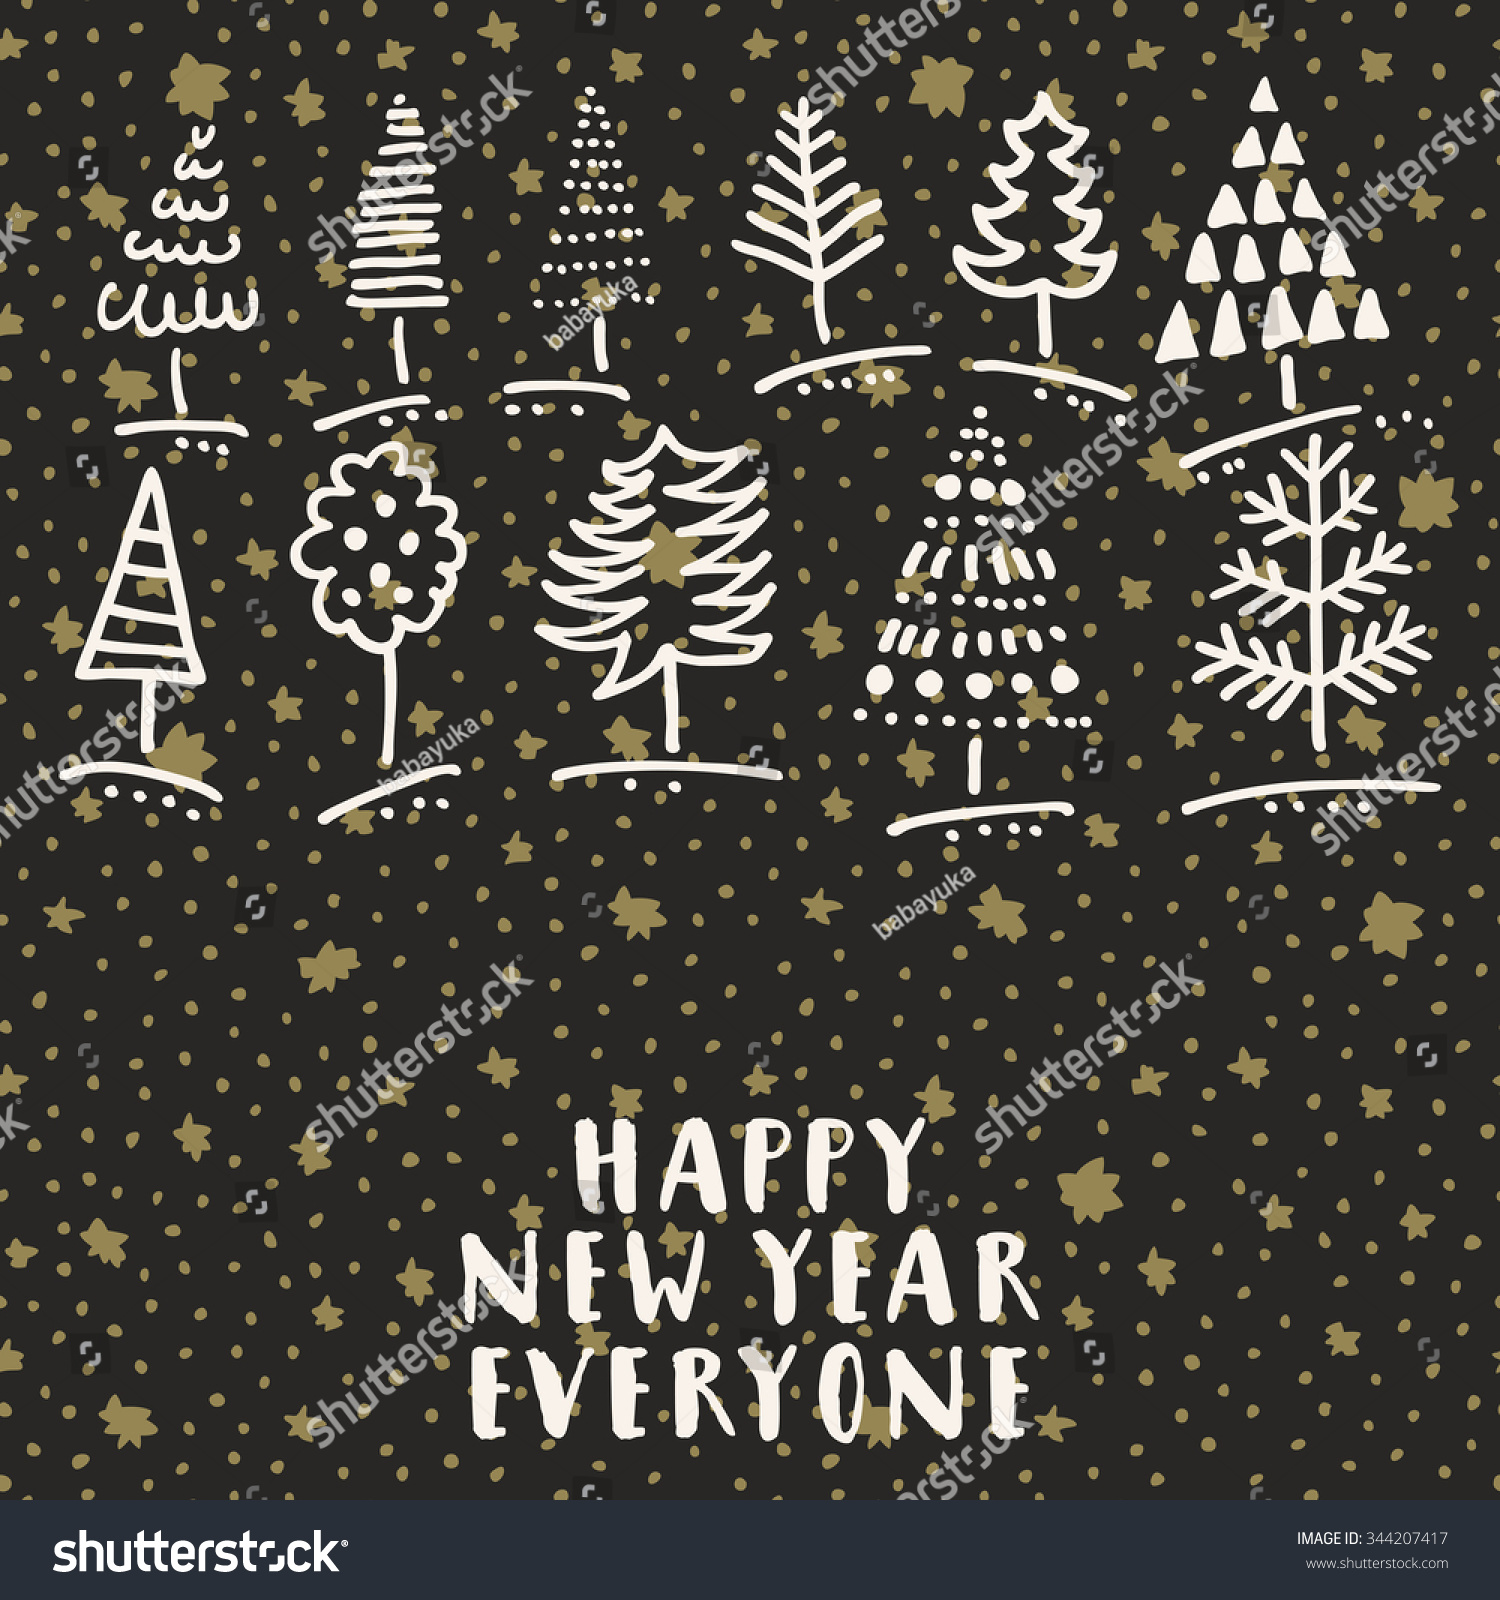 happy new year everyone trendy doodle hand drawn greeting card with christmas trees in vector